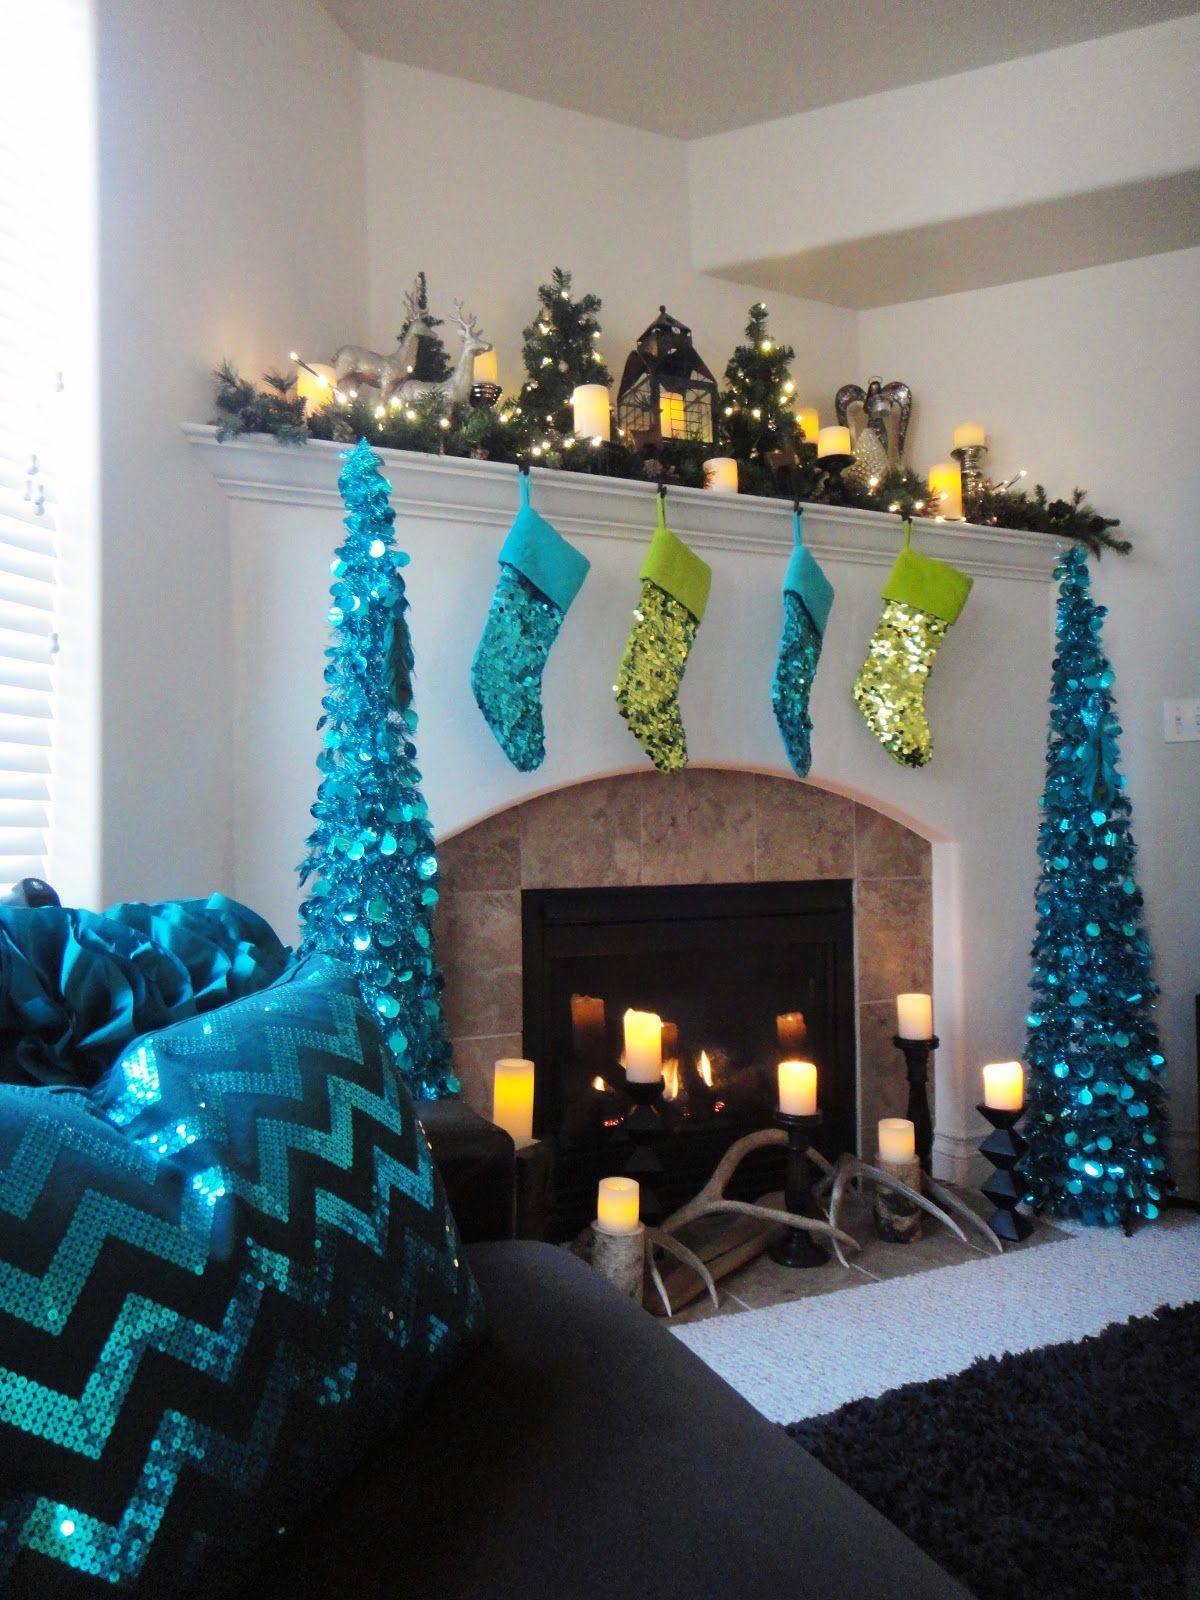 Non traditional christmas tree ideas - Worth Pinning Sparkling Holiday Decor I Love The Non Traditional Christmas Colors In